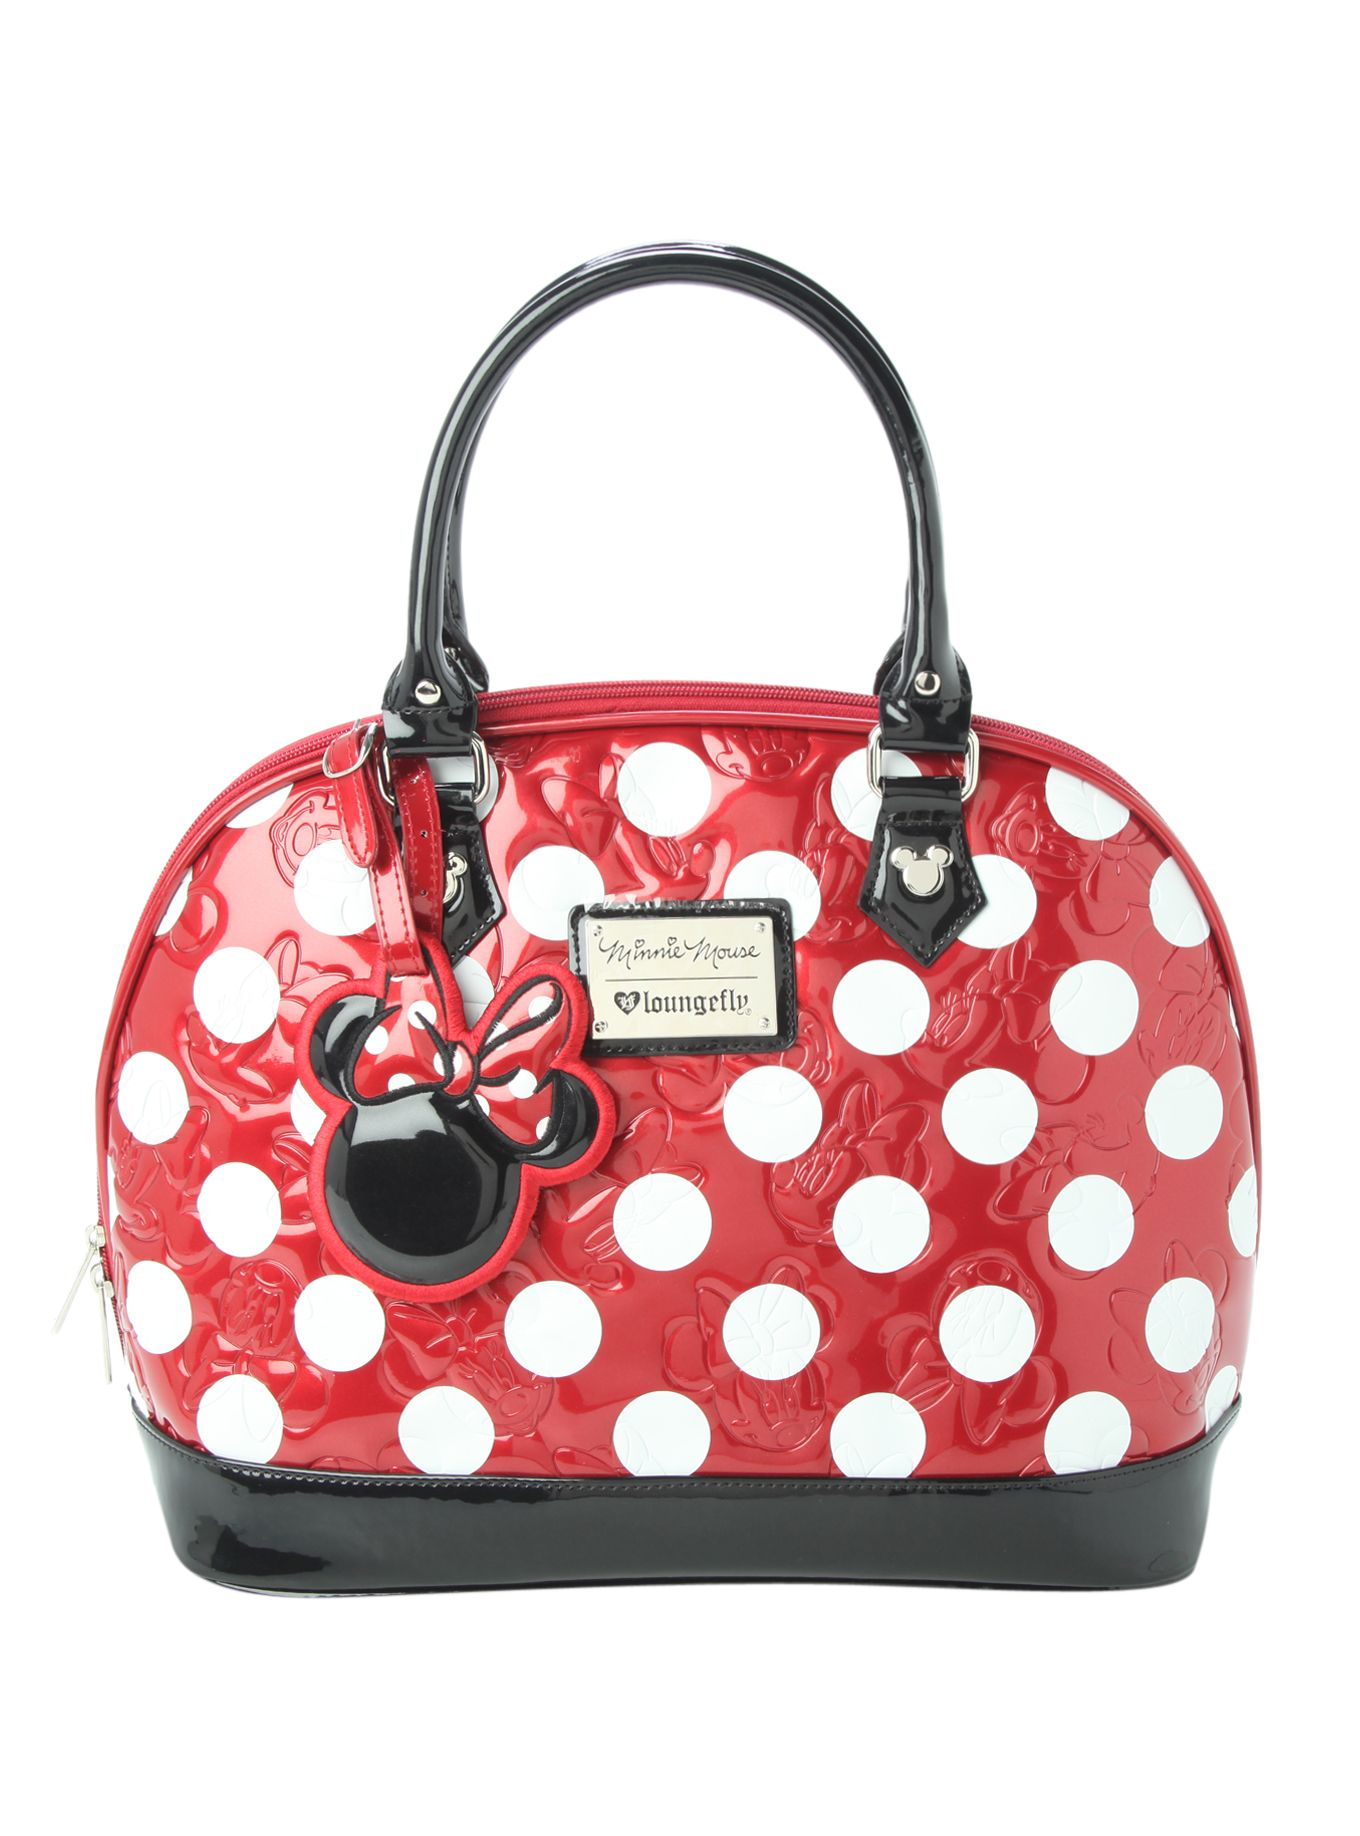 2e4984b0d43d Loungefly Disney Minnie Mouse Polka Dot Dome Bag | Hot Topic ...